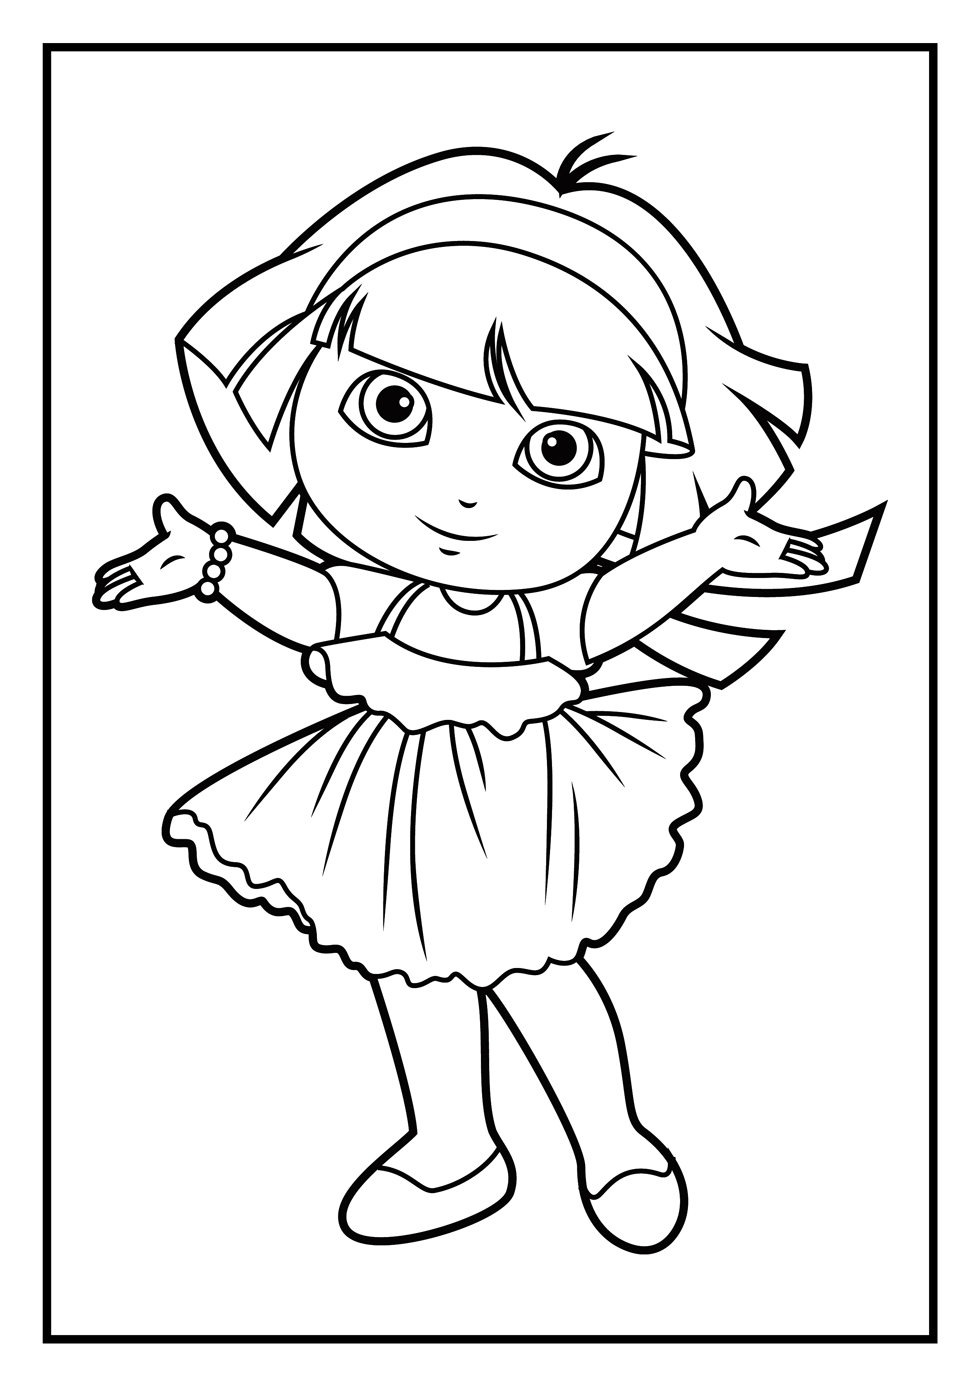 Free printable coloring pages dora 2015 for Dora halloween coloring pages